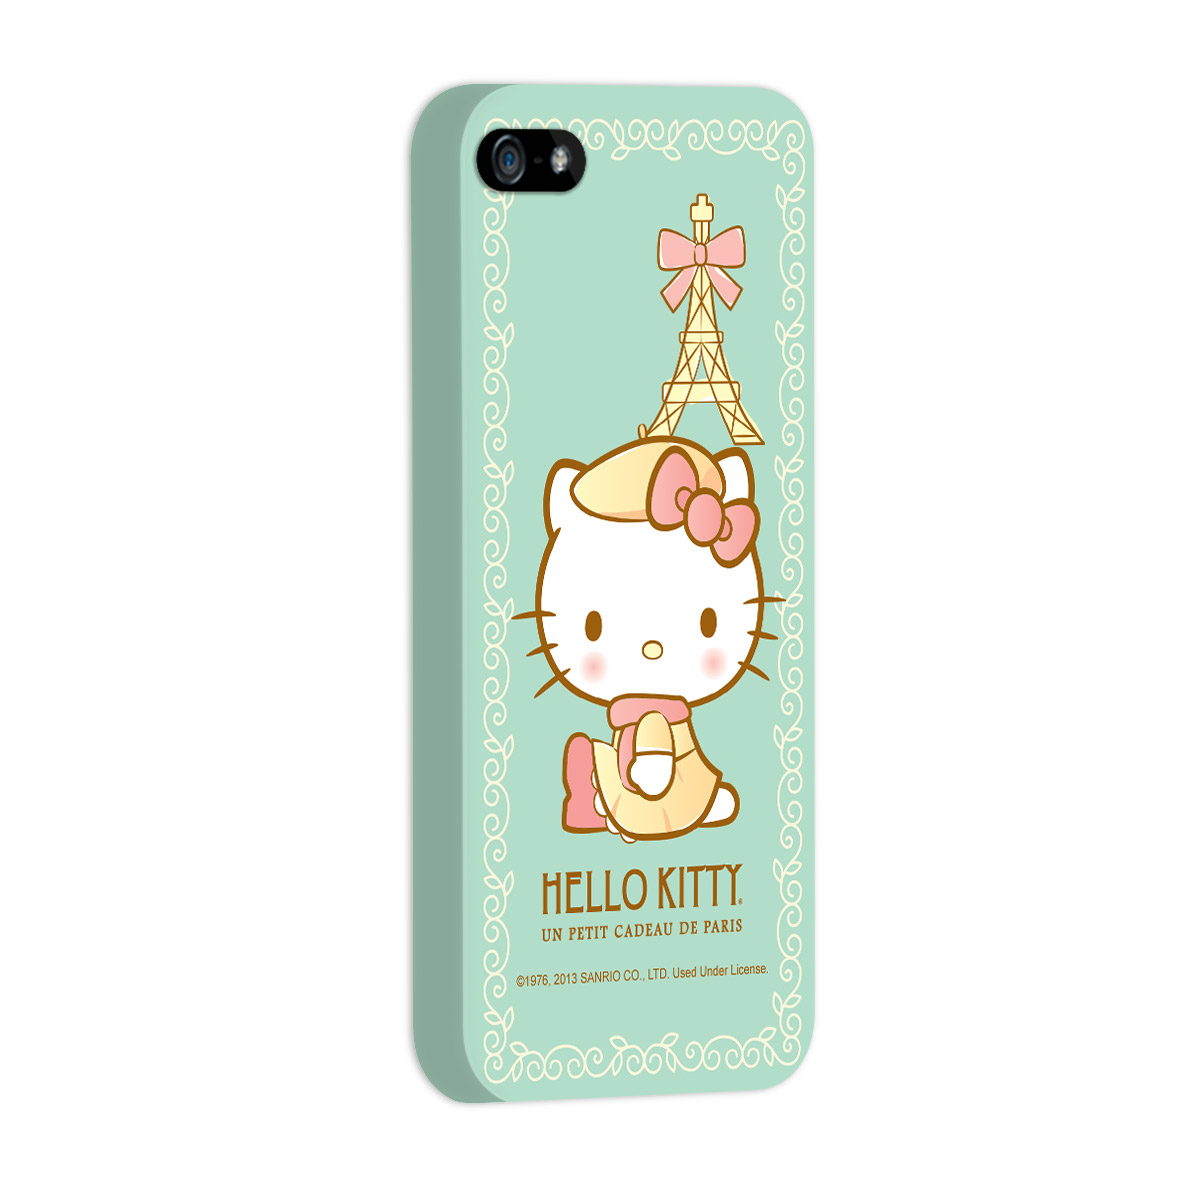 Capa de iPhone 5/5S Hello Kitty Un Petit Cadeau